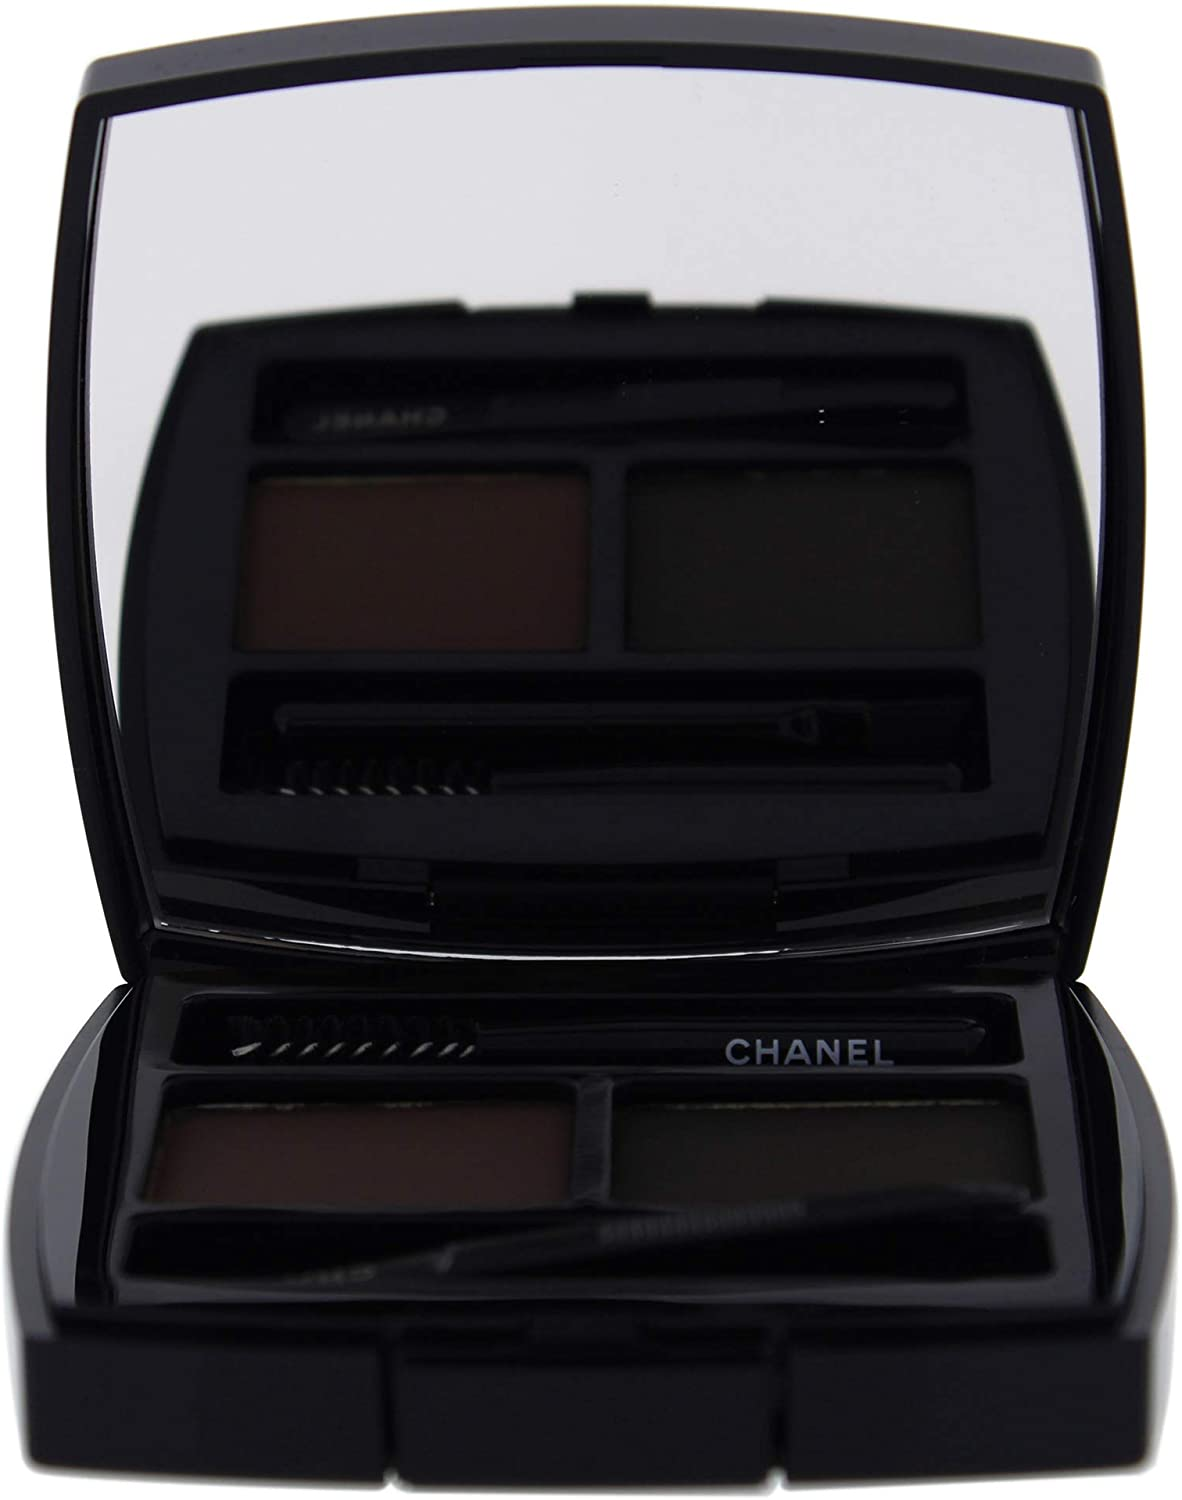 Chanel la Palette Sourcils #50 Brun 4 Gr 400 g: Amazon.es: Belleza